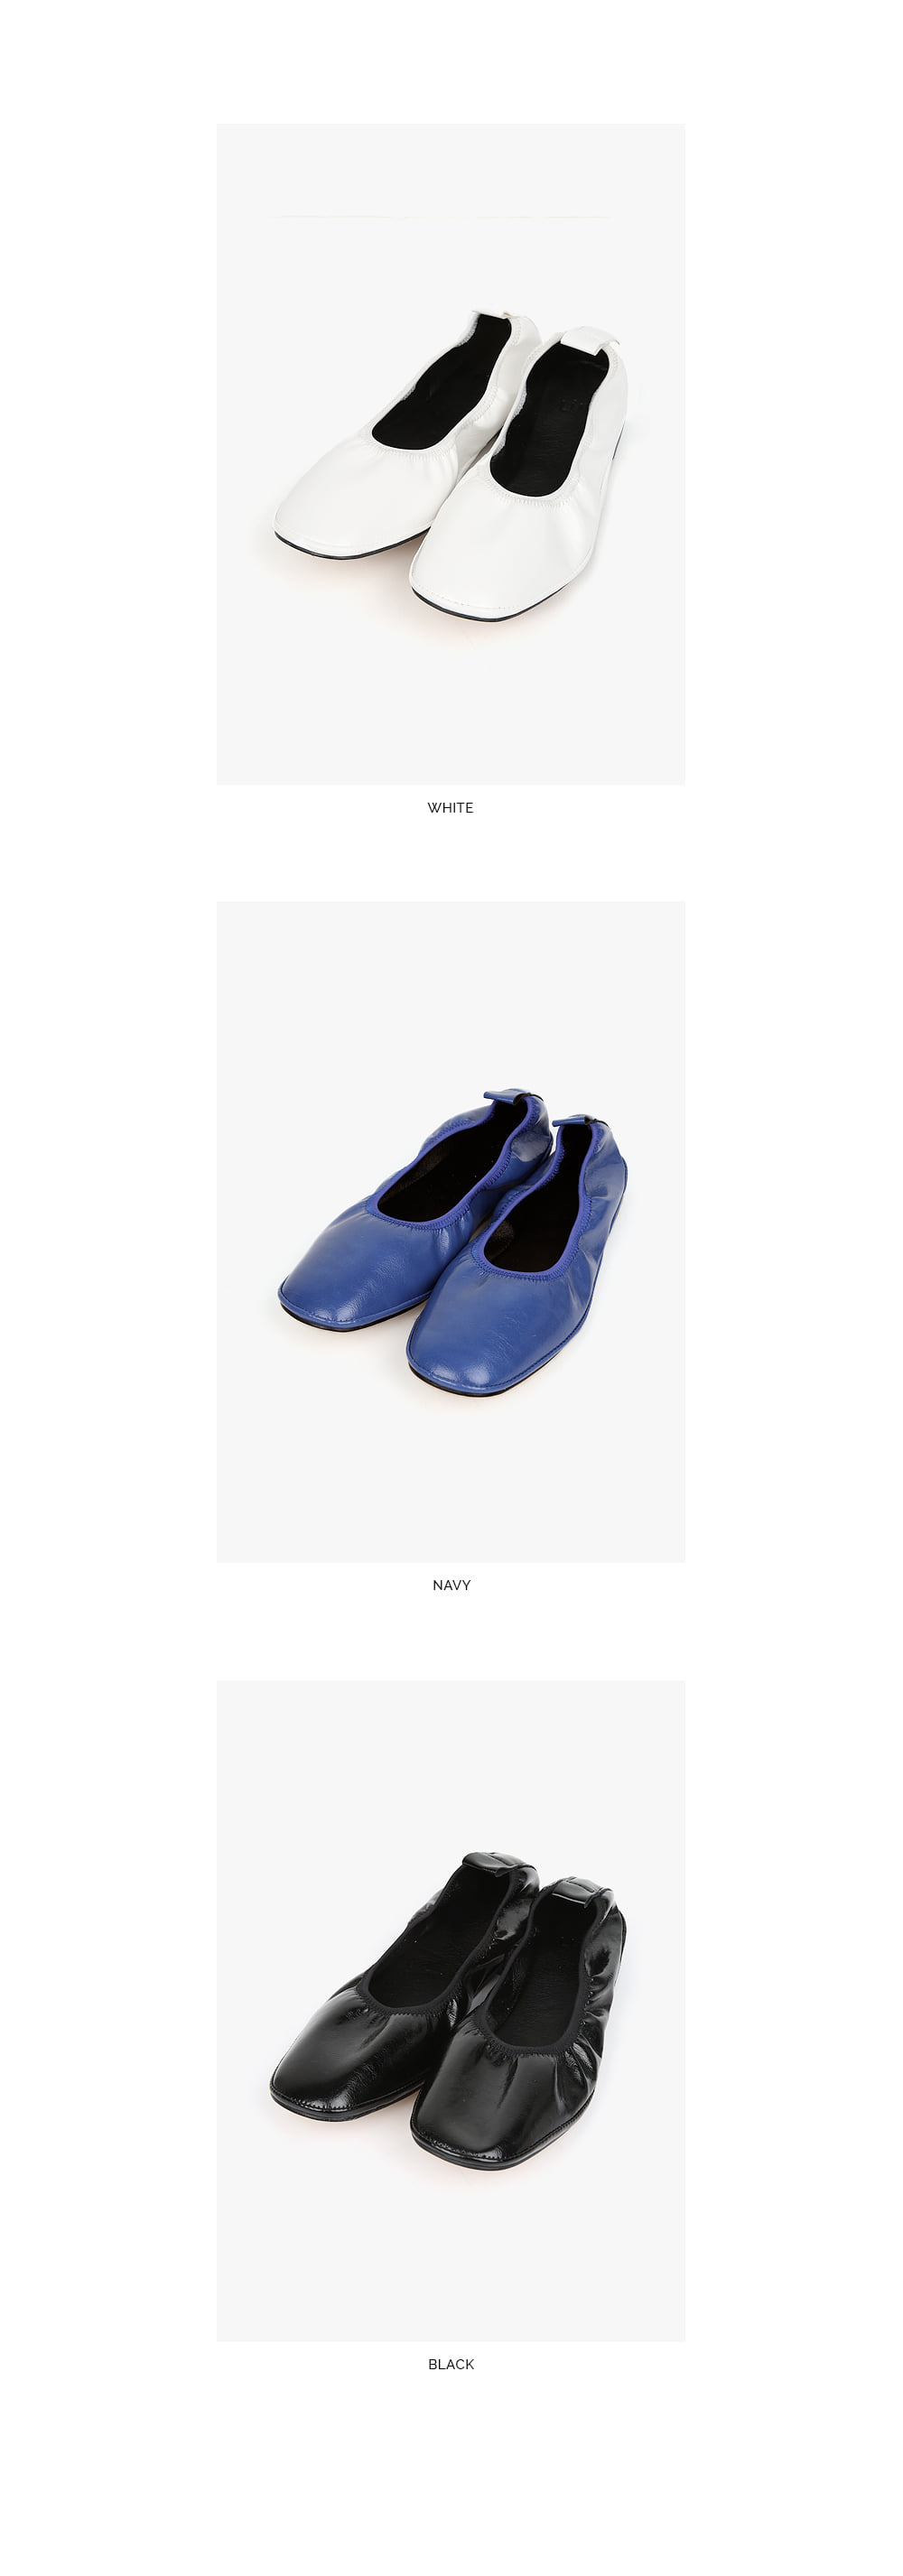 cover flat shoes